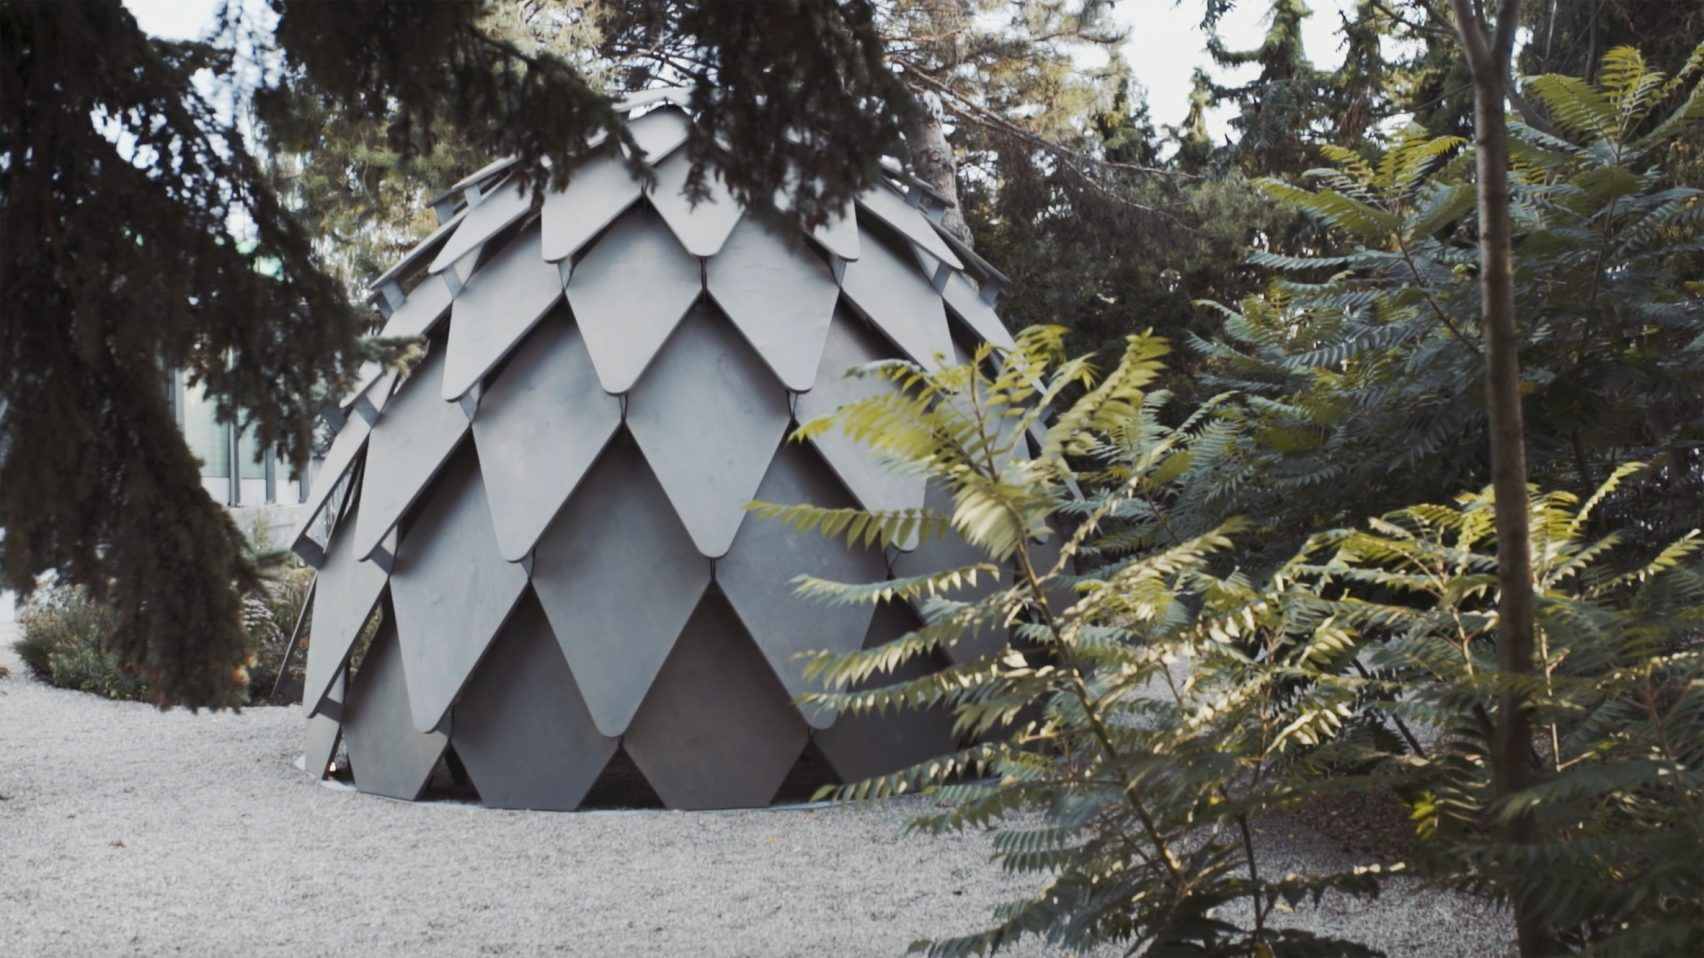 pinecone-mobile-gazebo-atelier-sad-noko-02.jpg